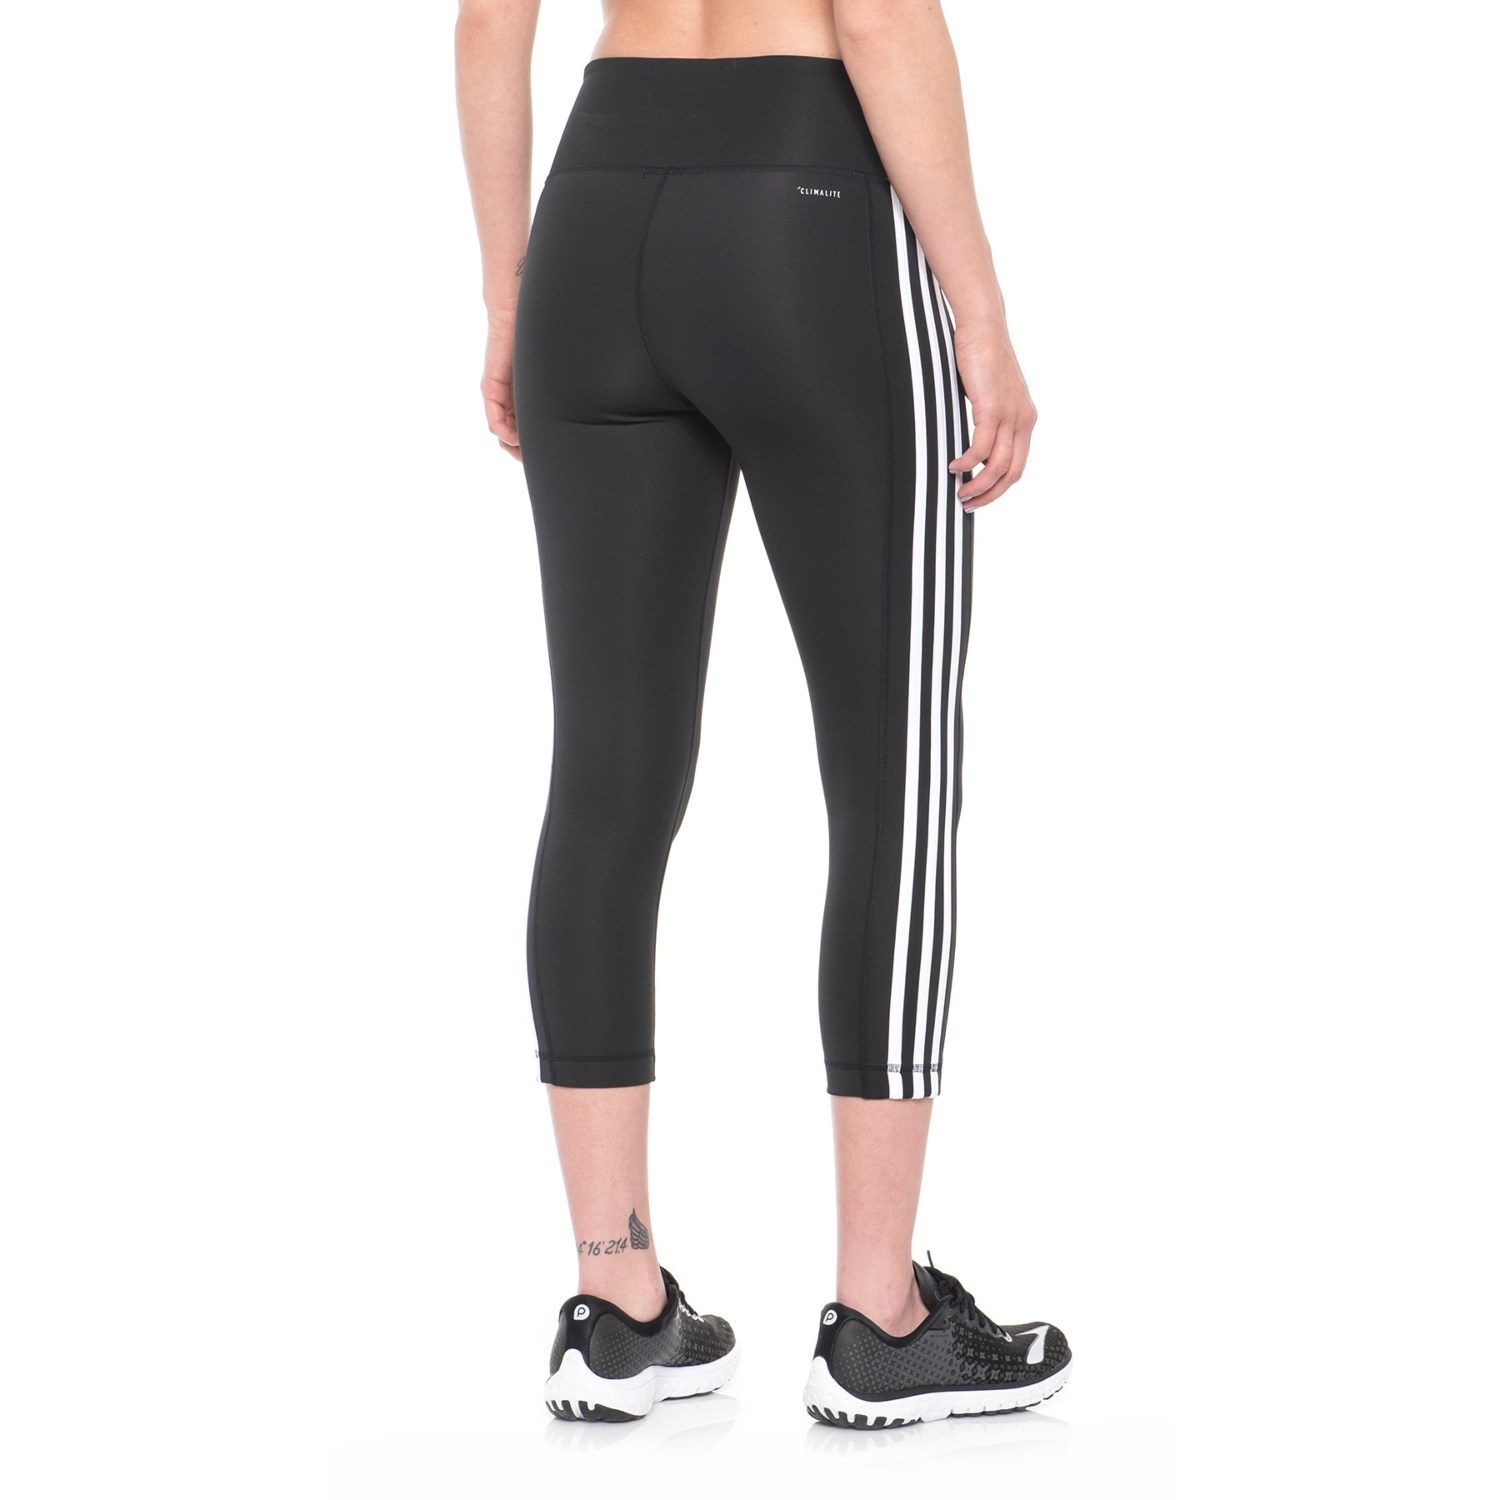 a2d96ca827996 adidas ClimaLite® 3-Stripes Crop Tights (For Women) - Save 45%